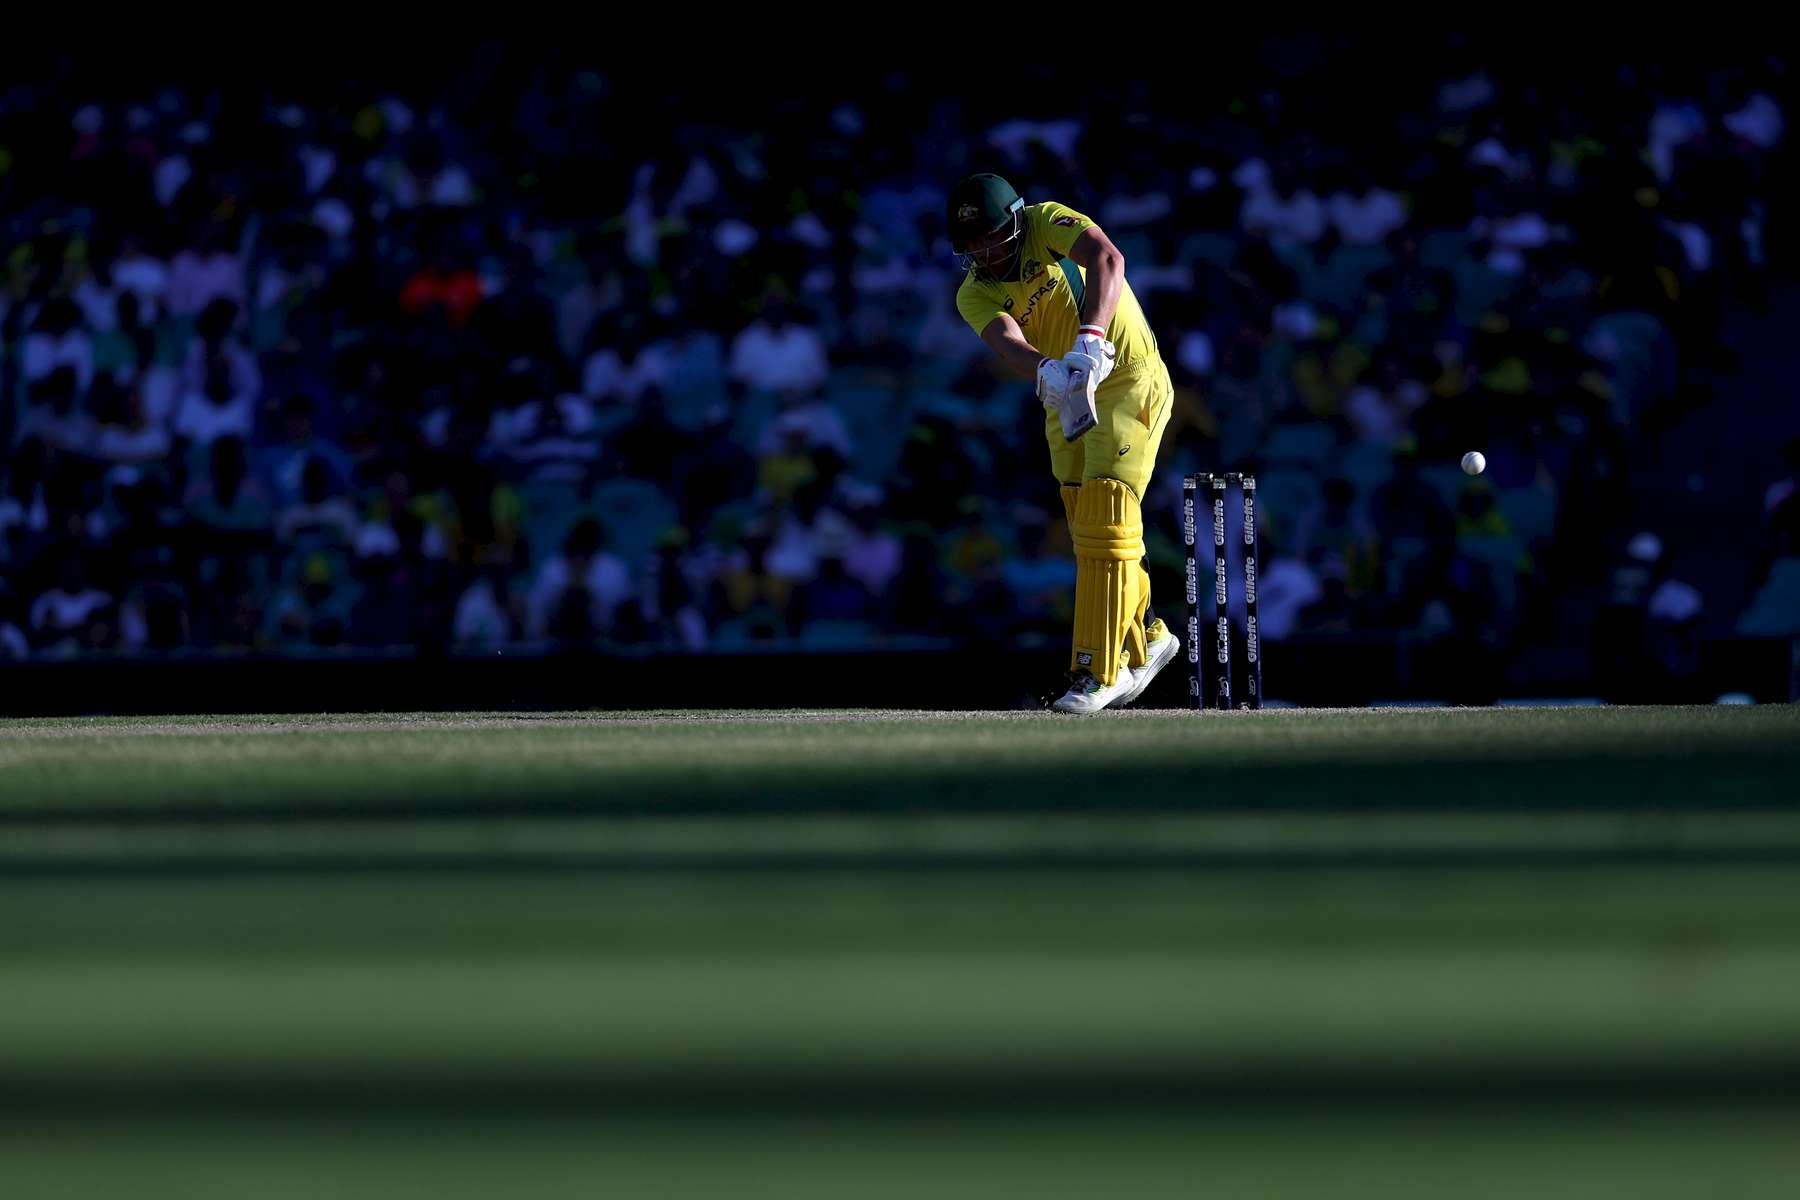 SYDNEY, AUSTRALIA - JANUARY 21:  Aaron Finch of Australia bats during game three of the One Day International series between Australia and England at Sydney Cricket Ground on January 21, 2018 in Sydney, Australia.  (Photo by Brook Mitchell/Getty Images)